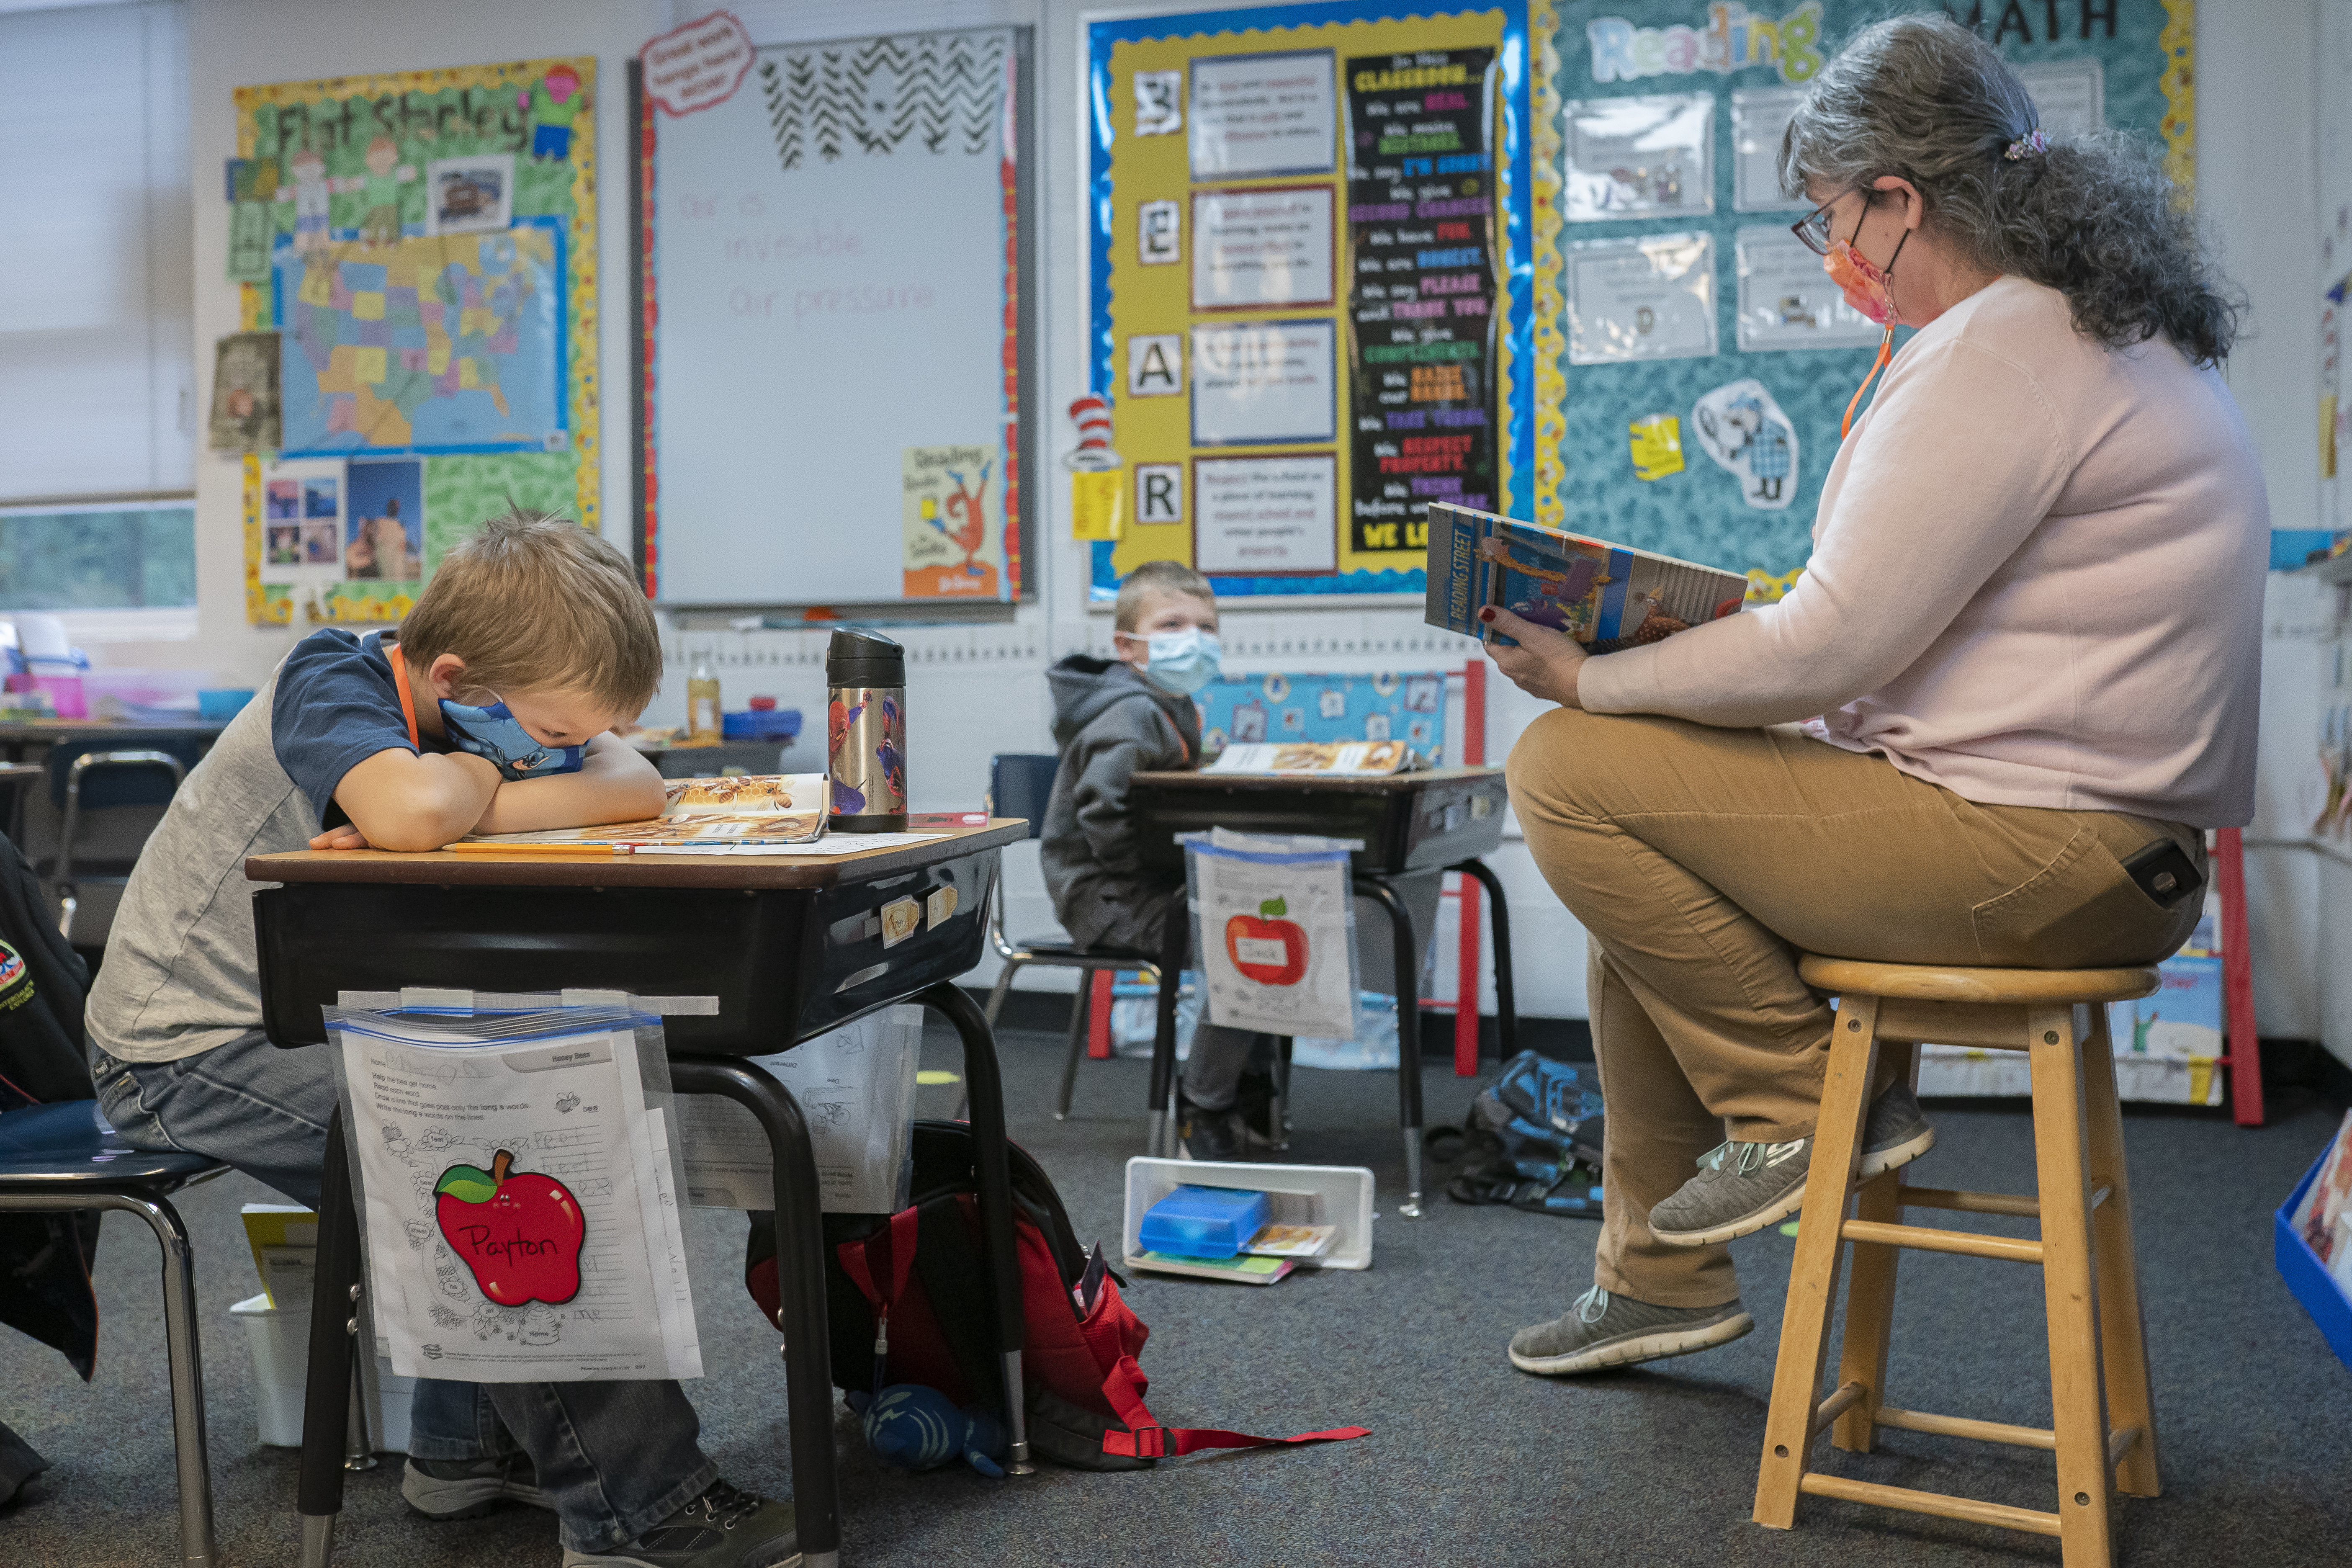 A masked teacher sitting on a stool looks at a book while a masked student, sitting at a desk in front of the teacher and his head resting on his crossed arms, looks at an open book.